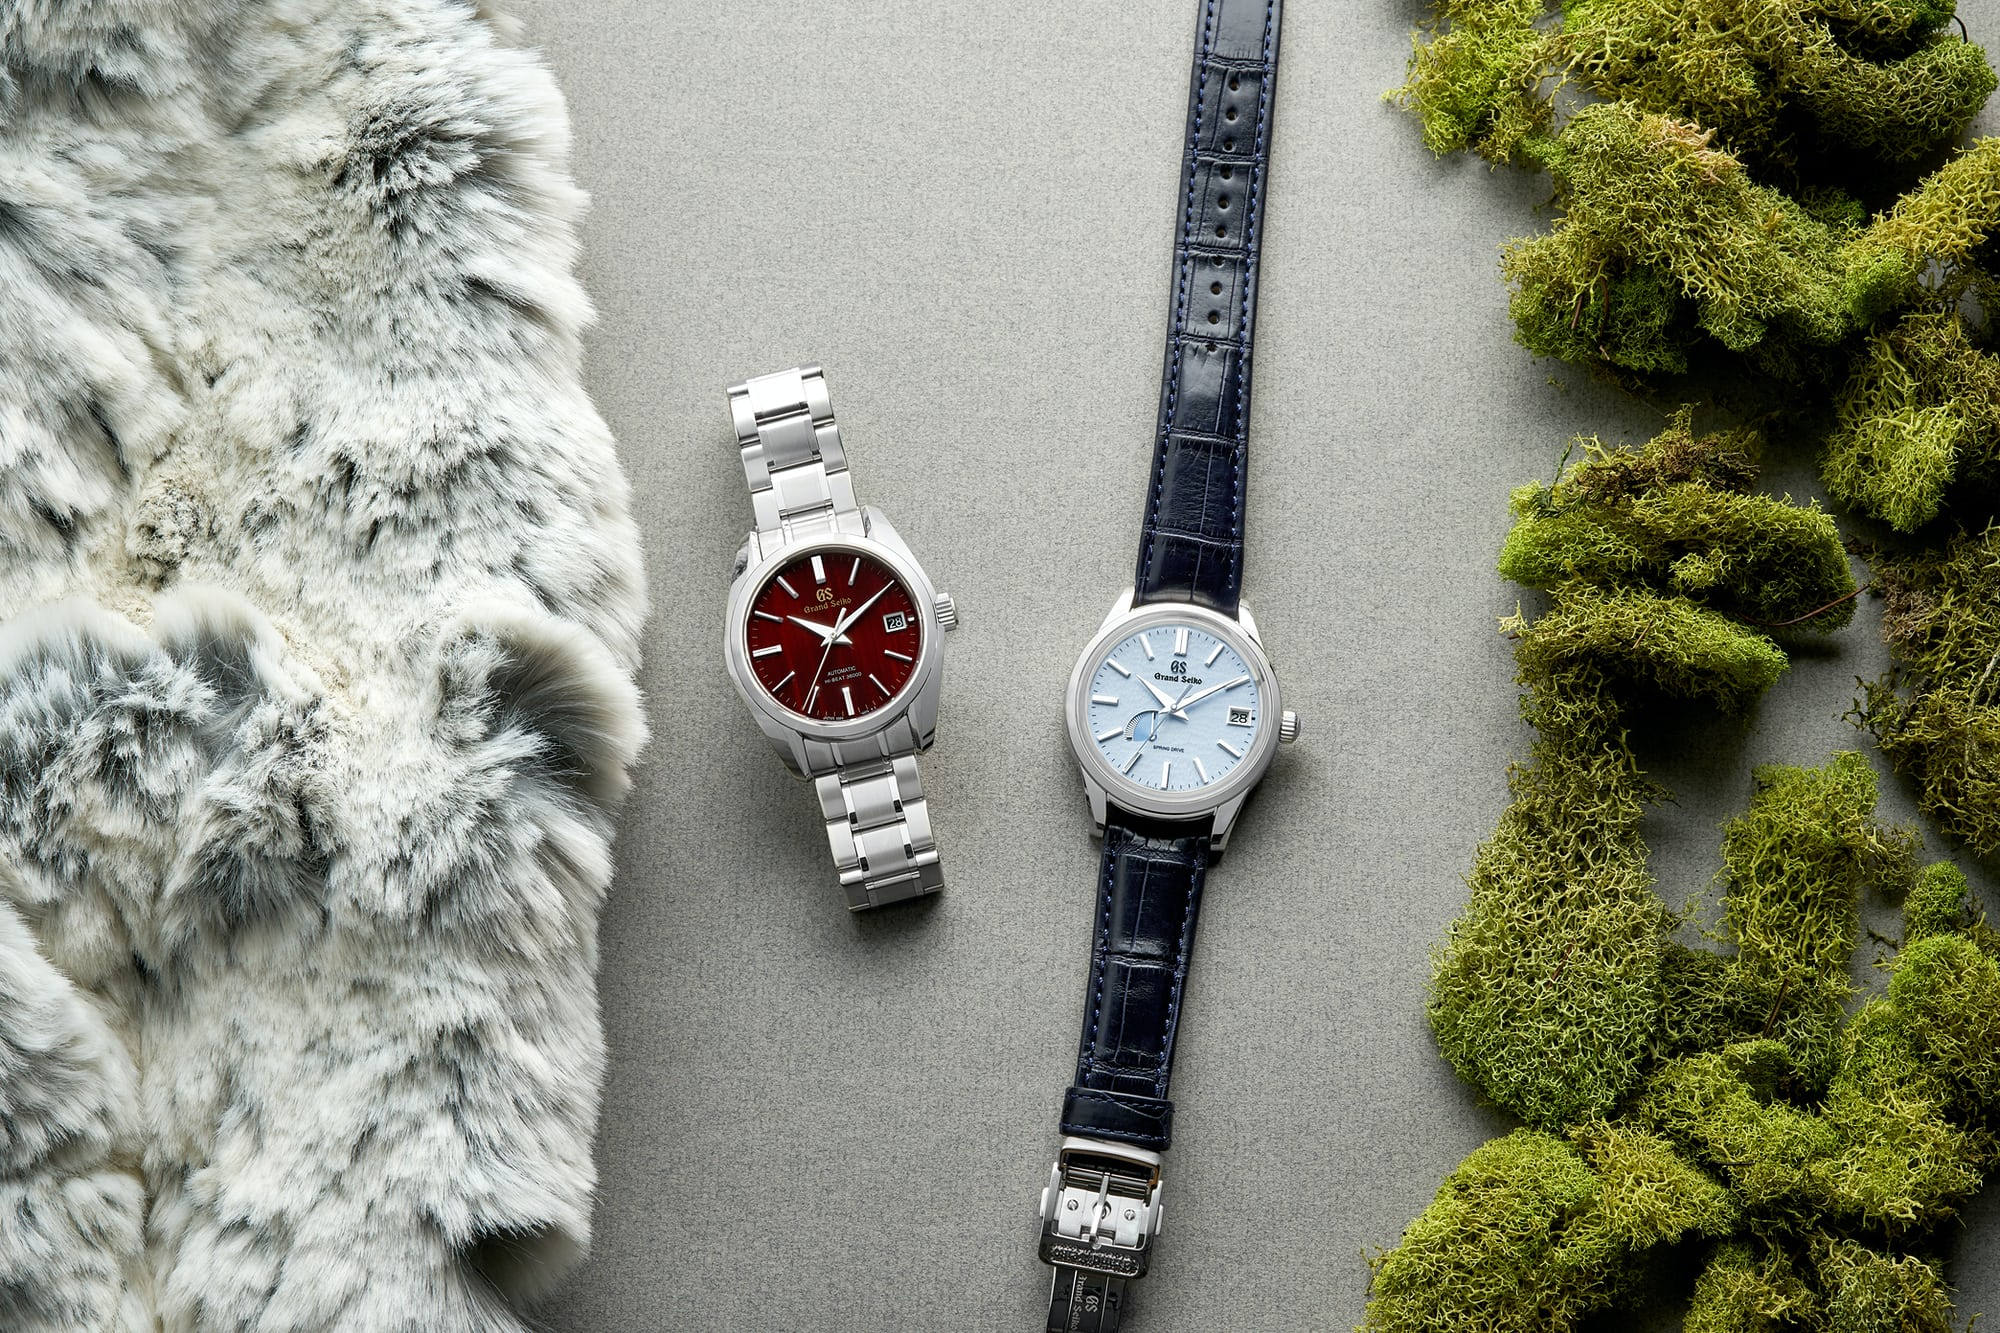 In The Shop - Introducing: The Grand Seiko 'Blue Snowflake' SBGA407 And The Hi-Beat Limited Edition For Autumn SBGH269